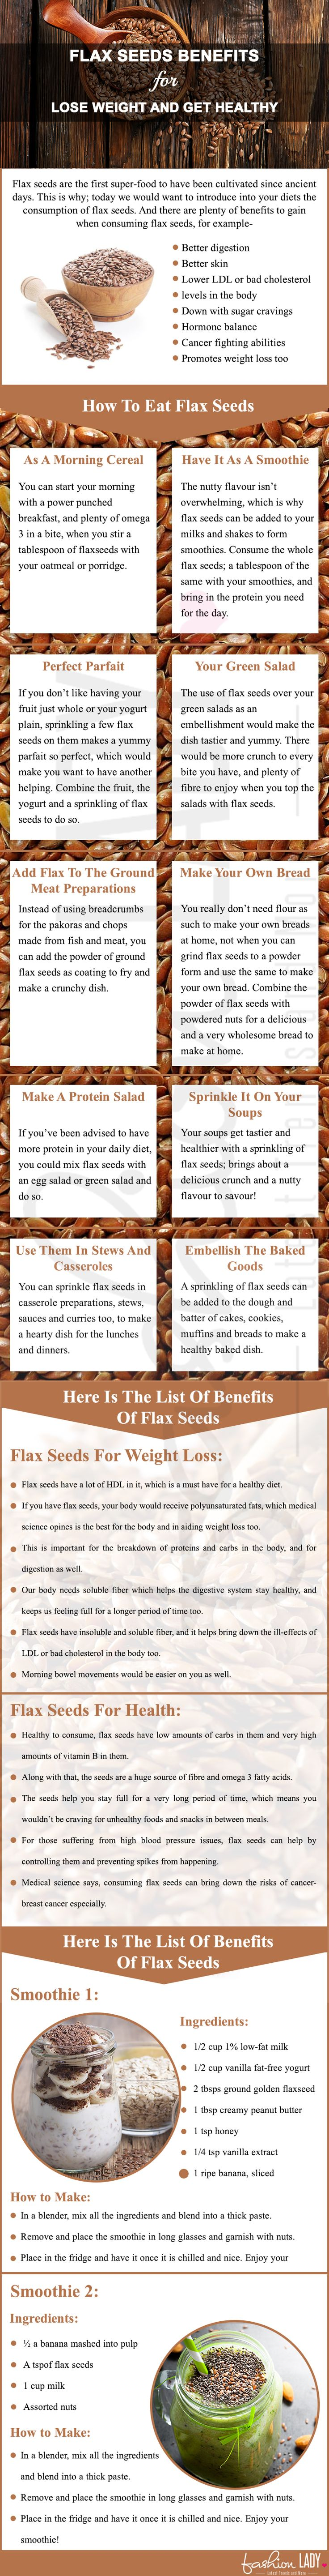 11 Flax Seeds Benefits For Lose Weight And Get Healthy. Add to soups, salads, baked goods, breads...